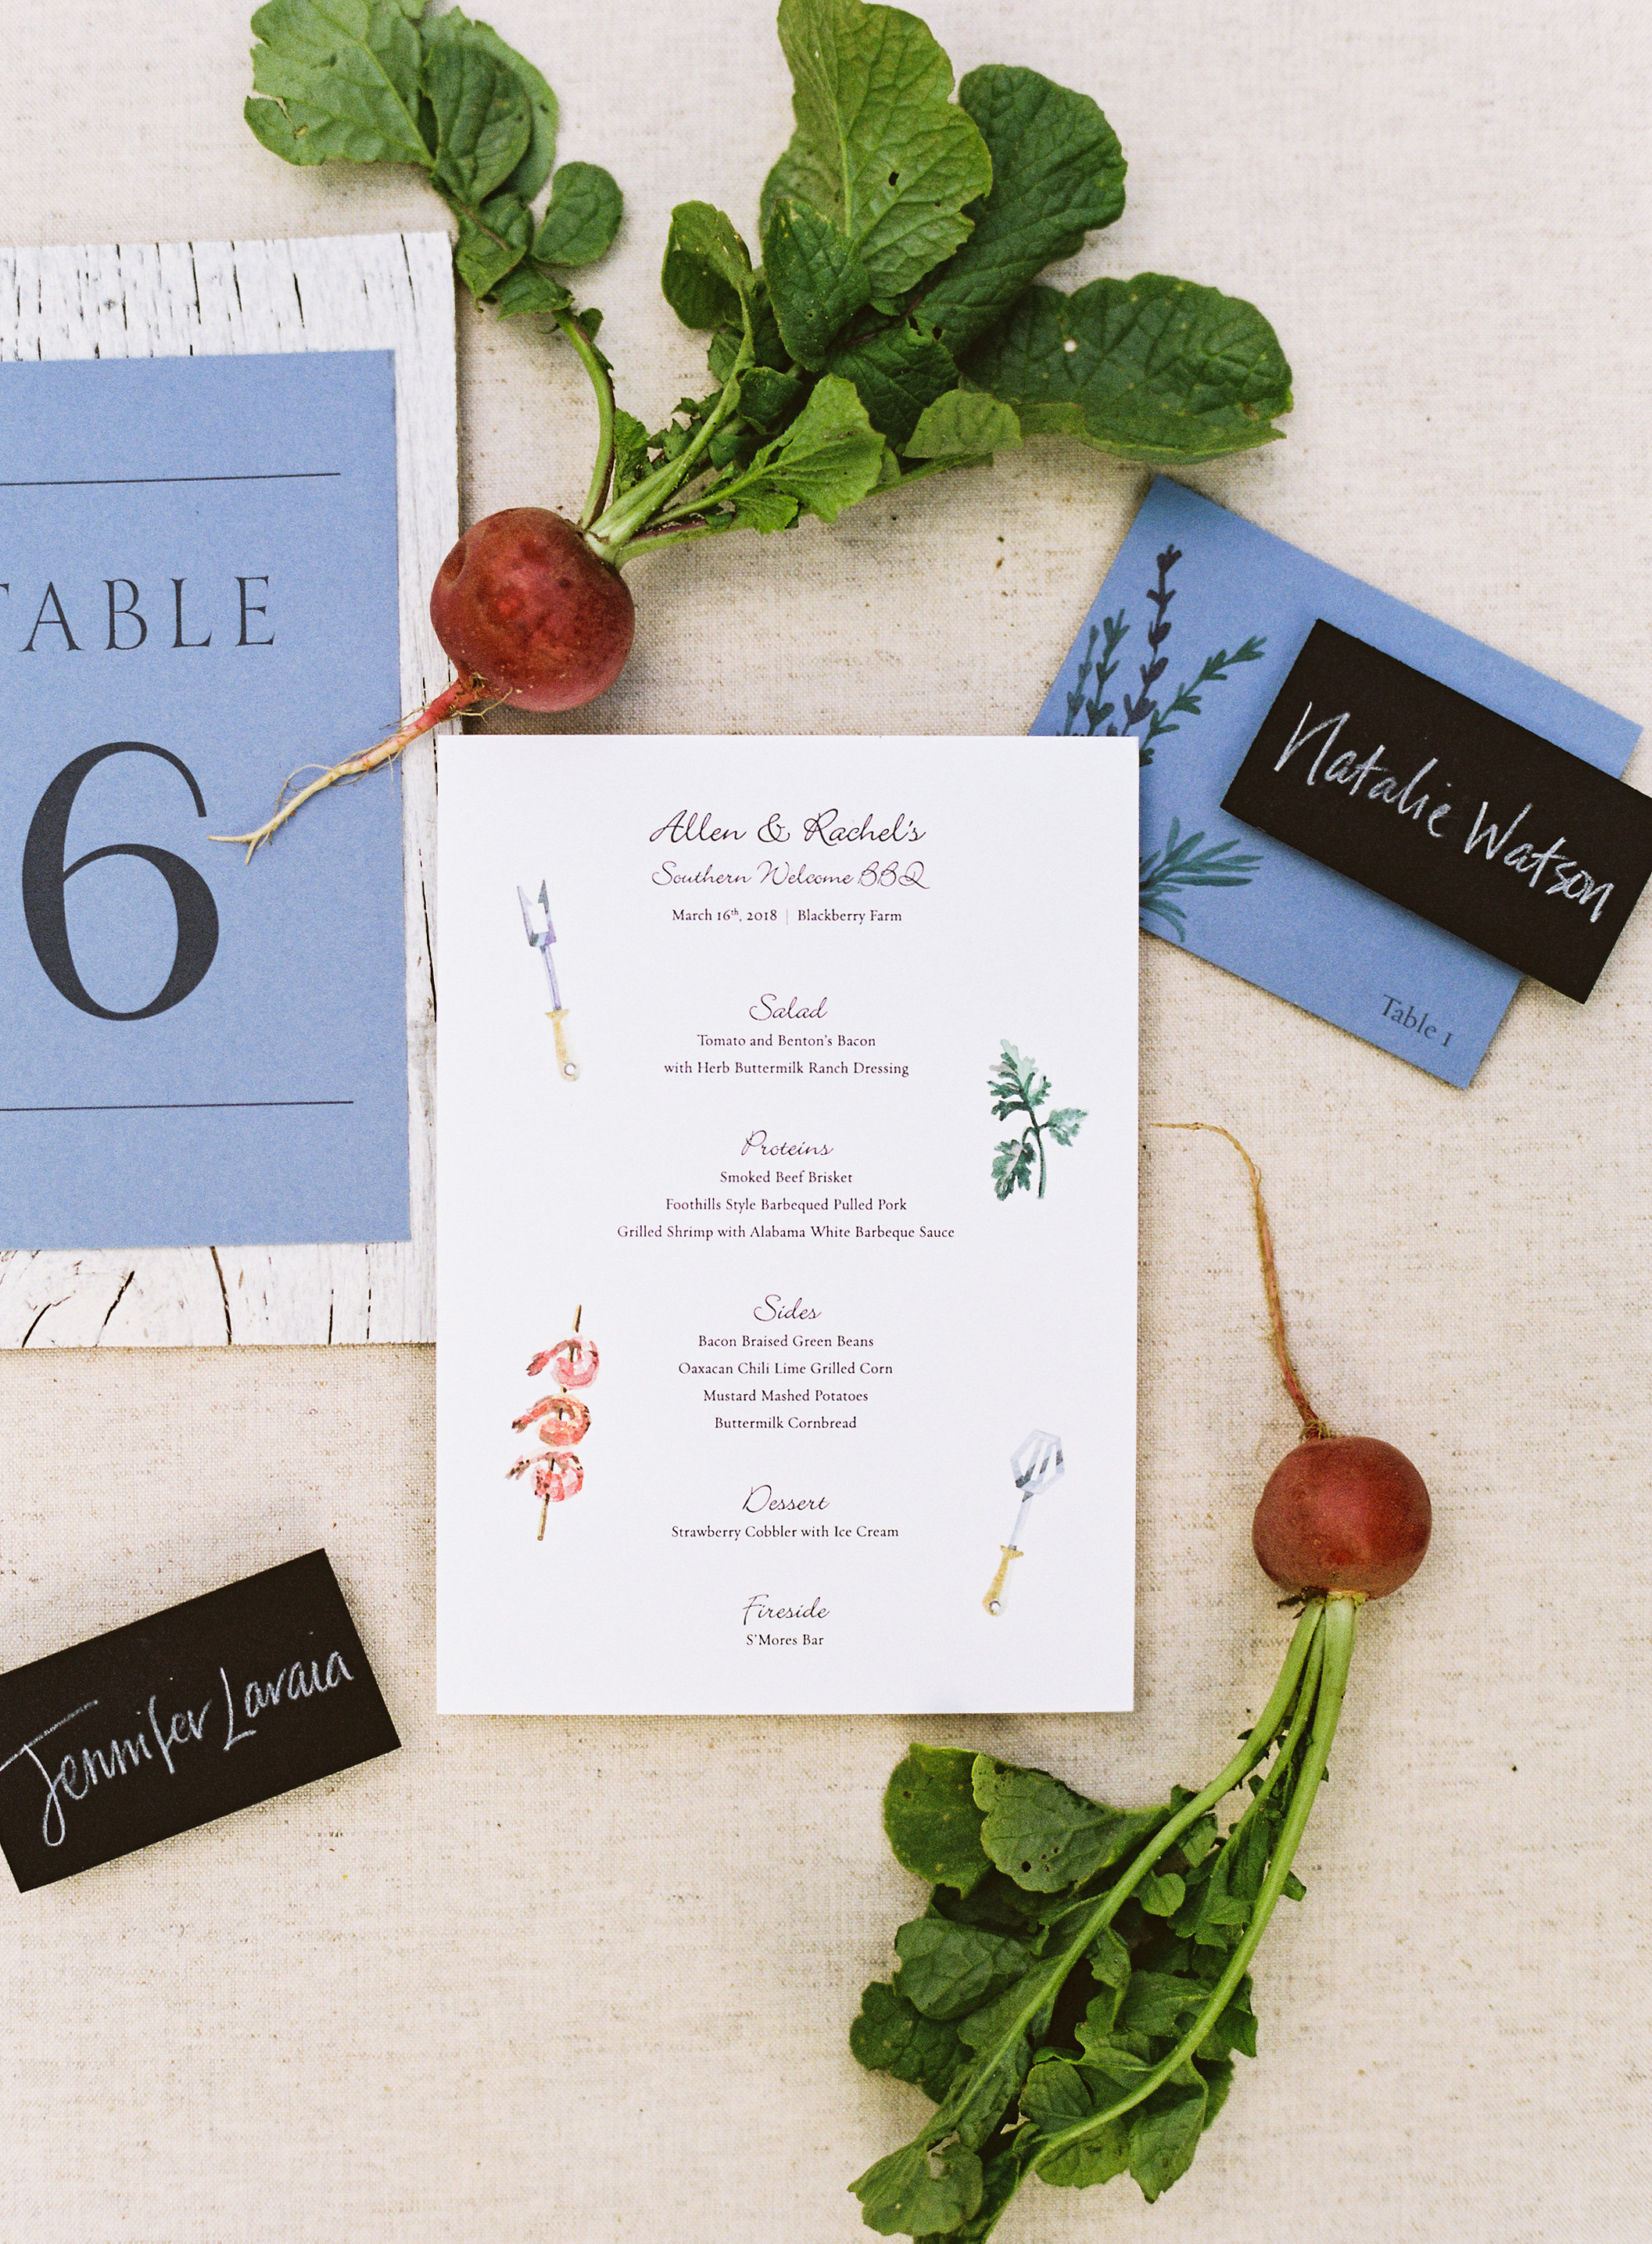 Blackberry Farm Wedding stationery: Escort card name tags, table numbers and menu | design and calligraphy by www.chavelli.com